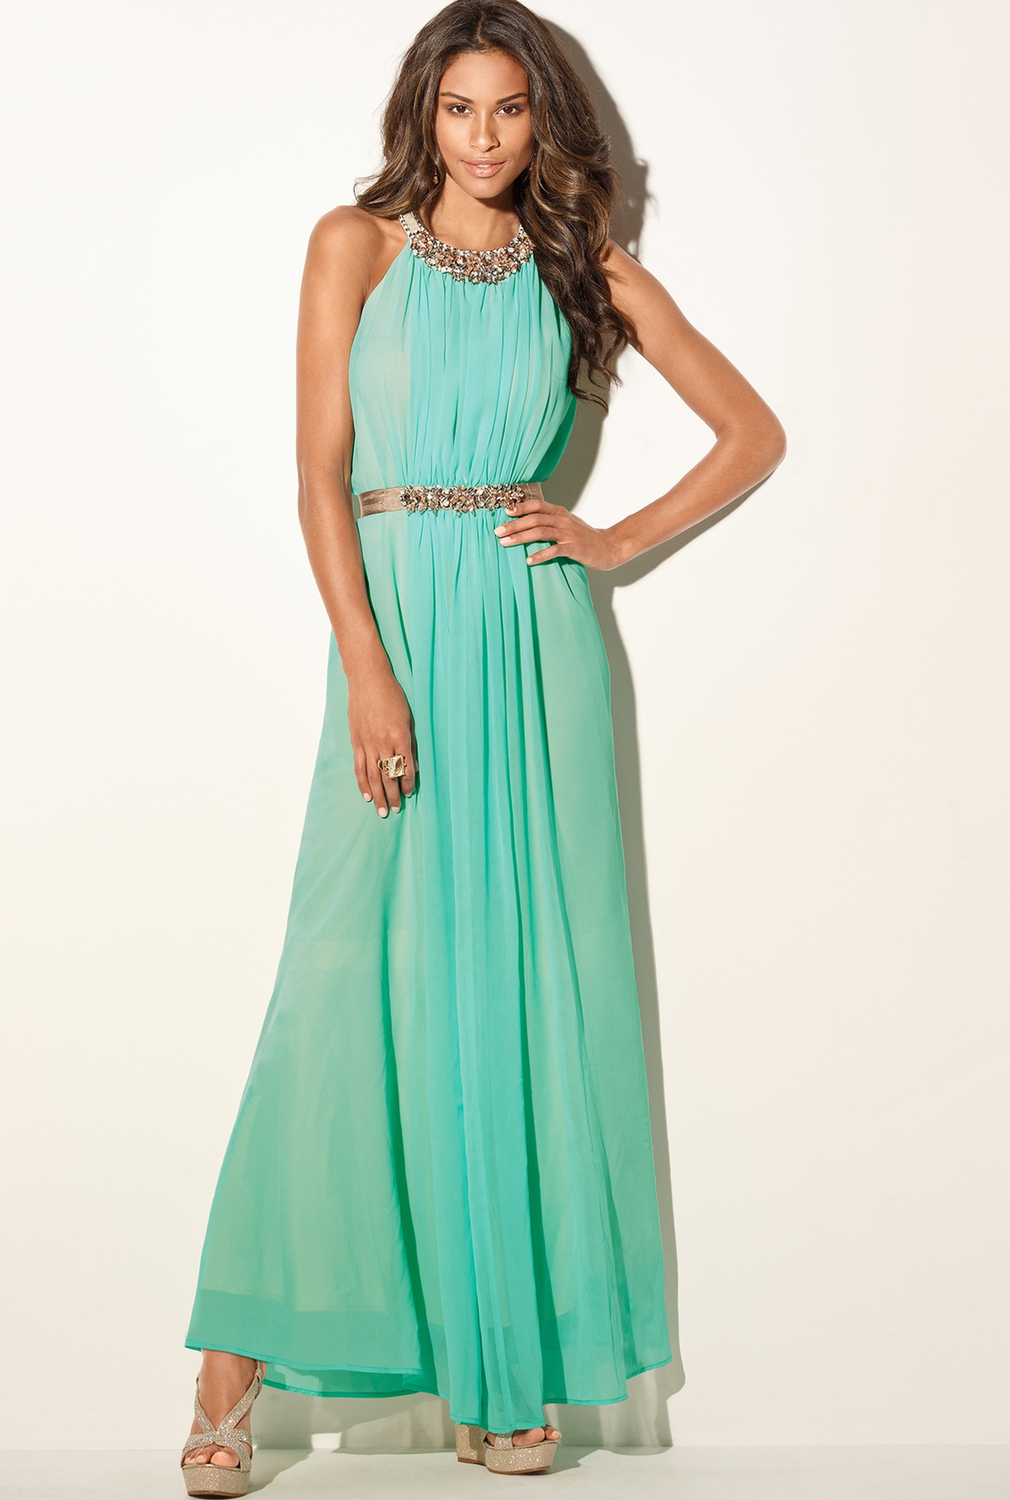 Boston Proper Beaded Goddess Maxi Dress